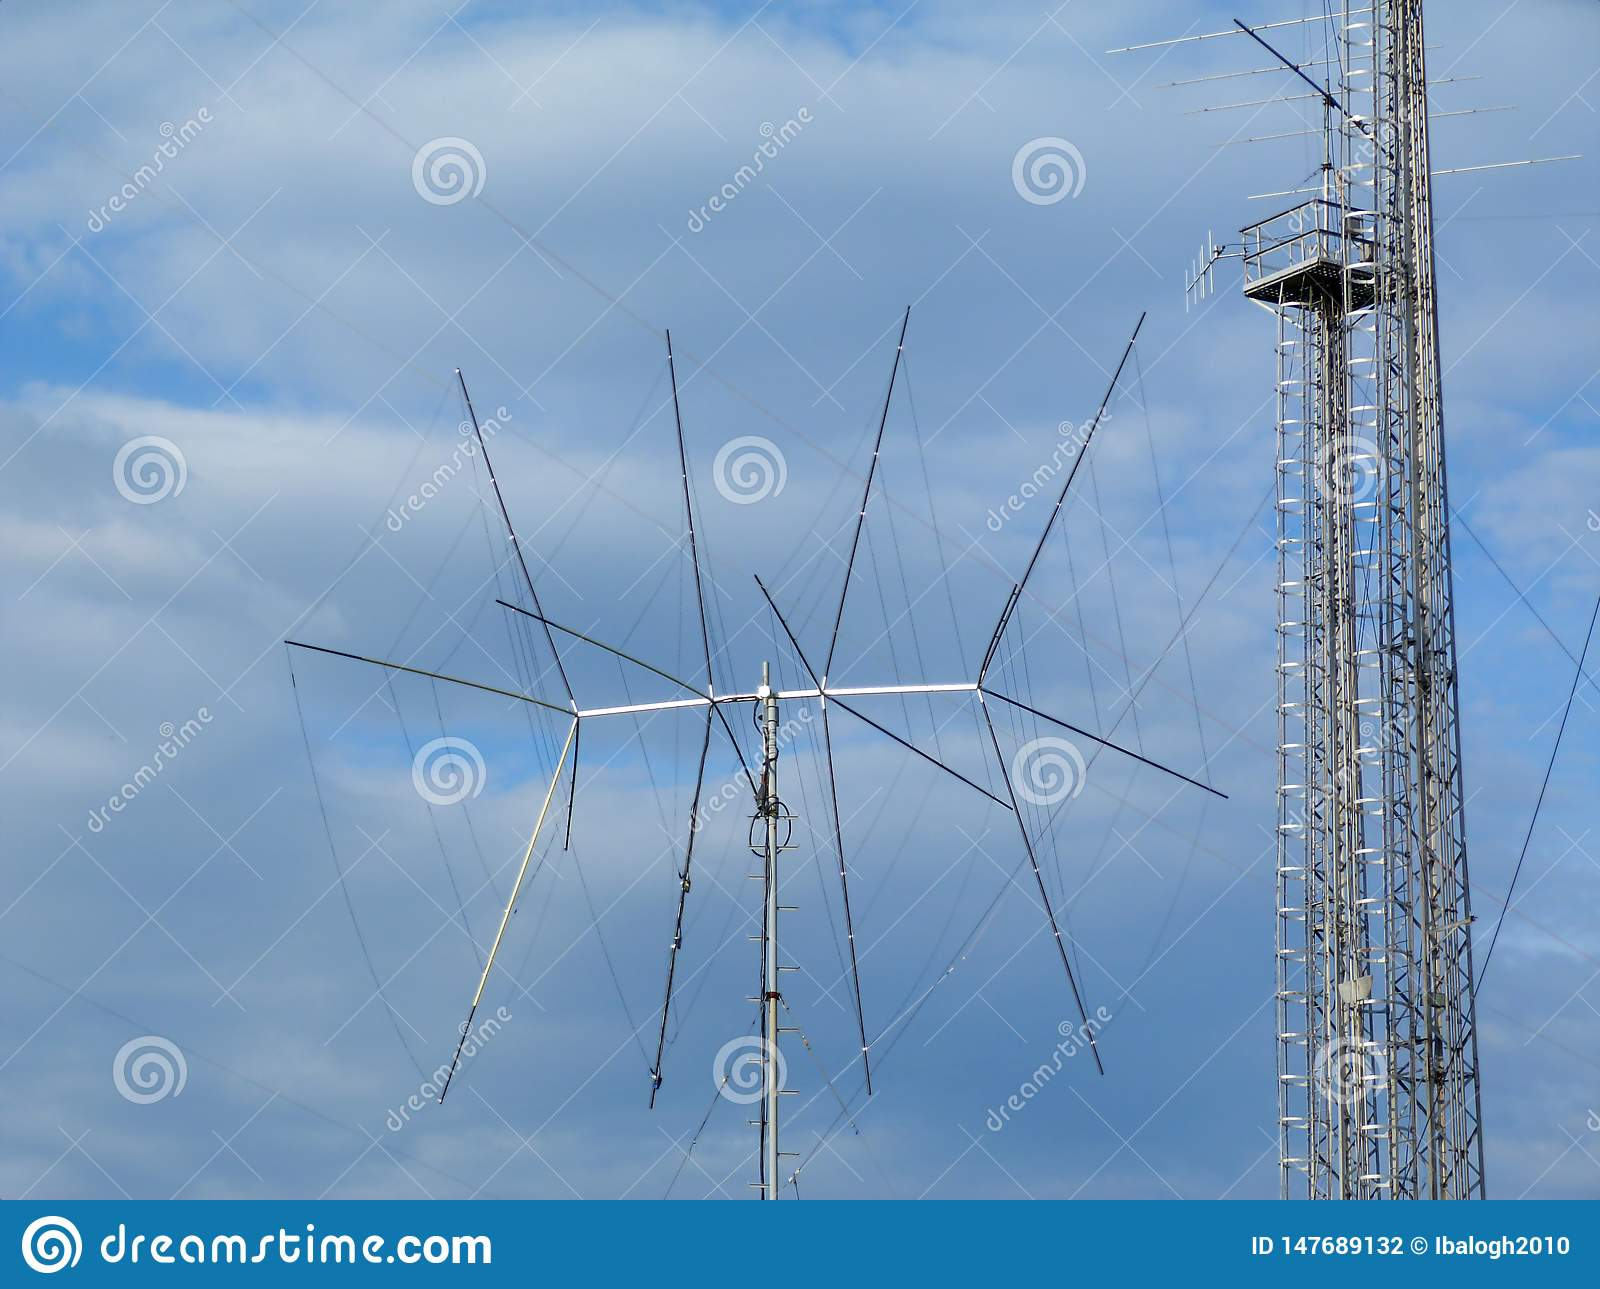 Broadcasting and cell transmitter and receiver antenna and communication tower